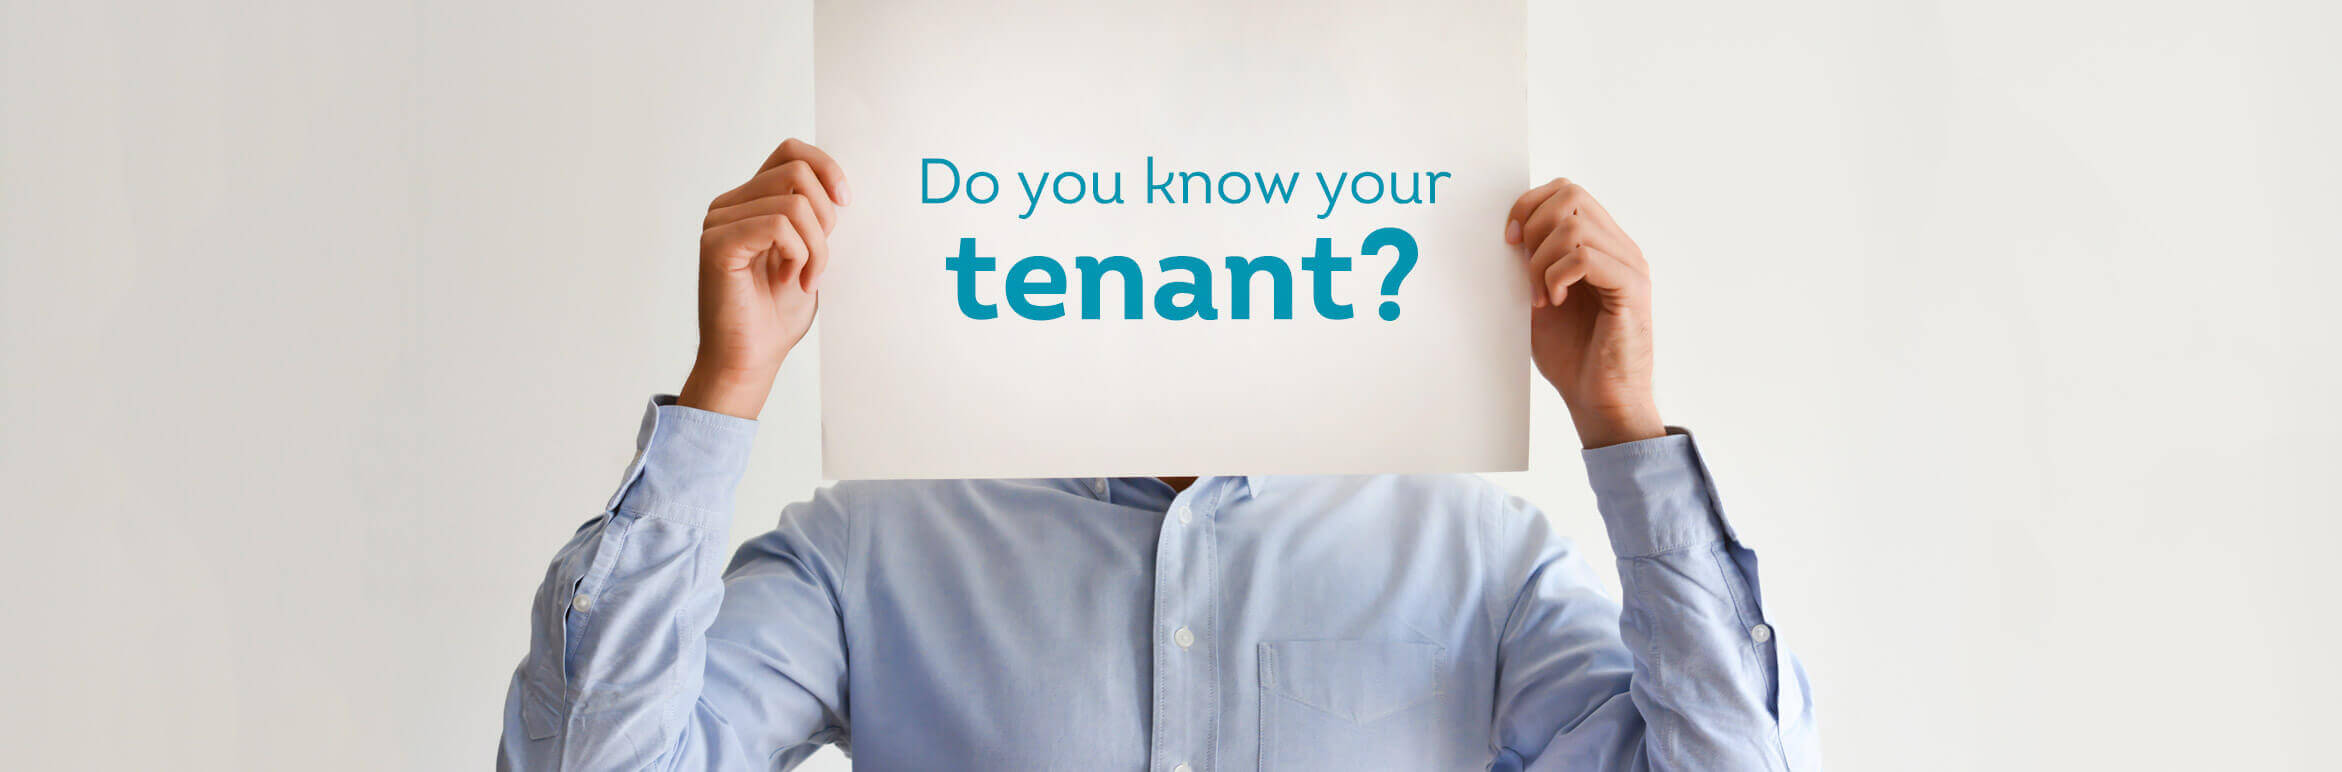 renter screening service can help you evaluate your tenant